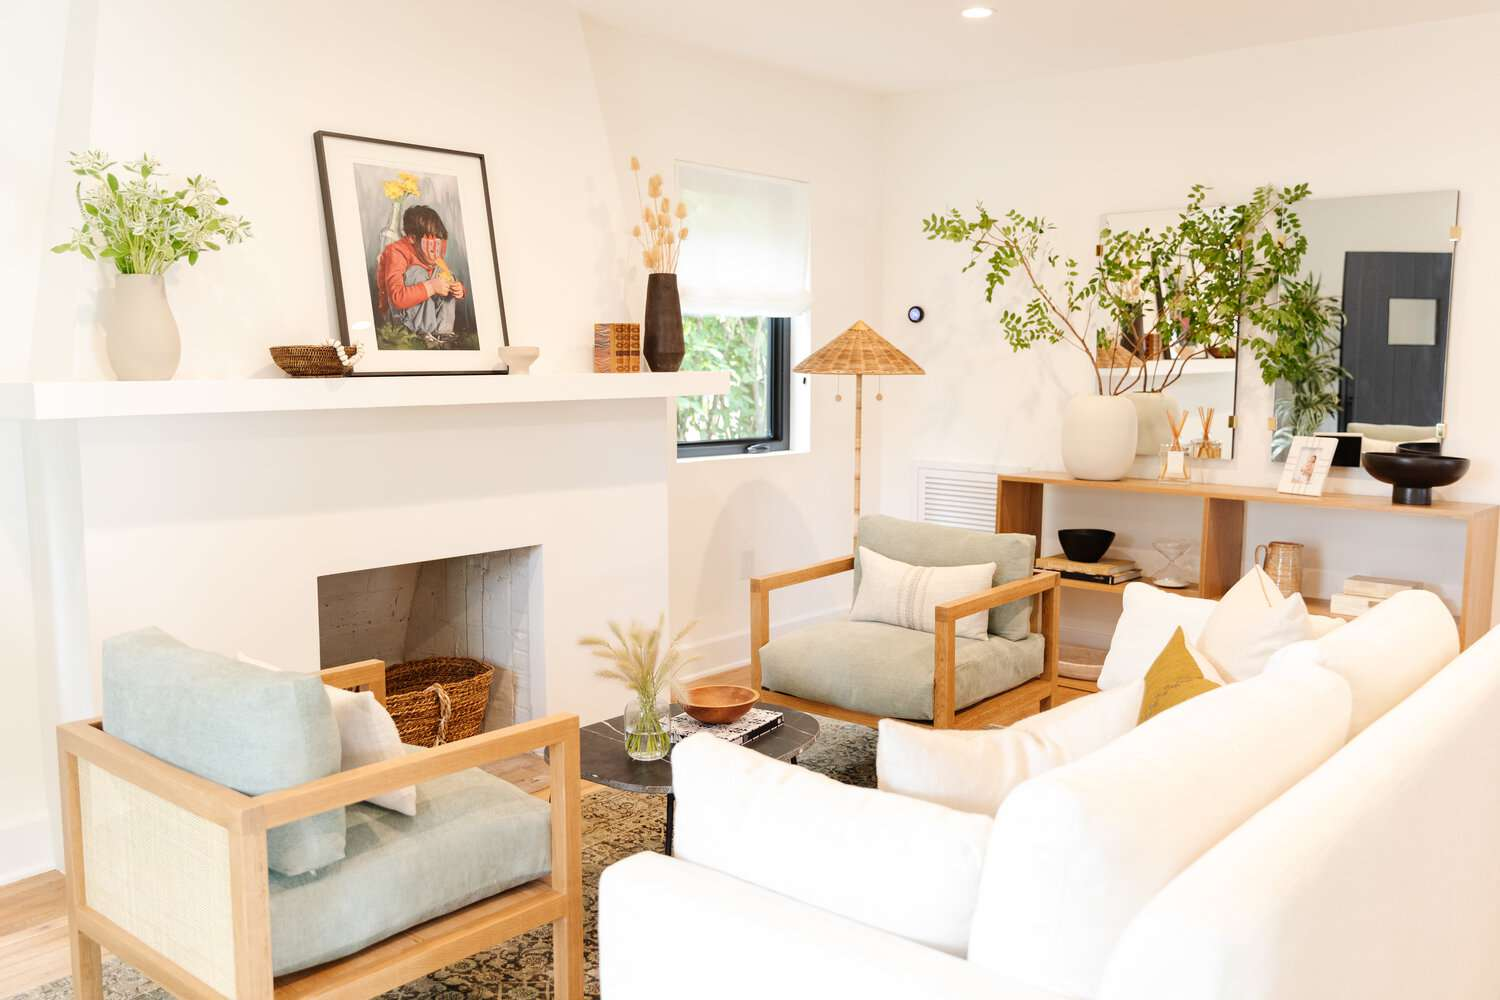 Living room with white couches